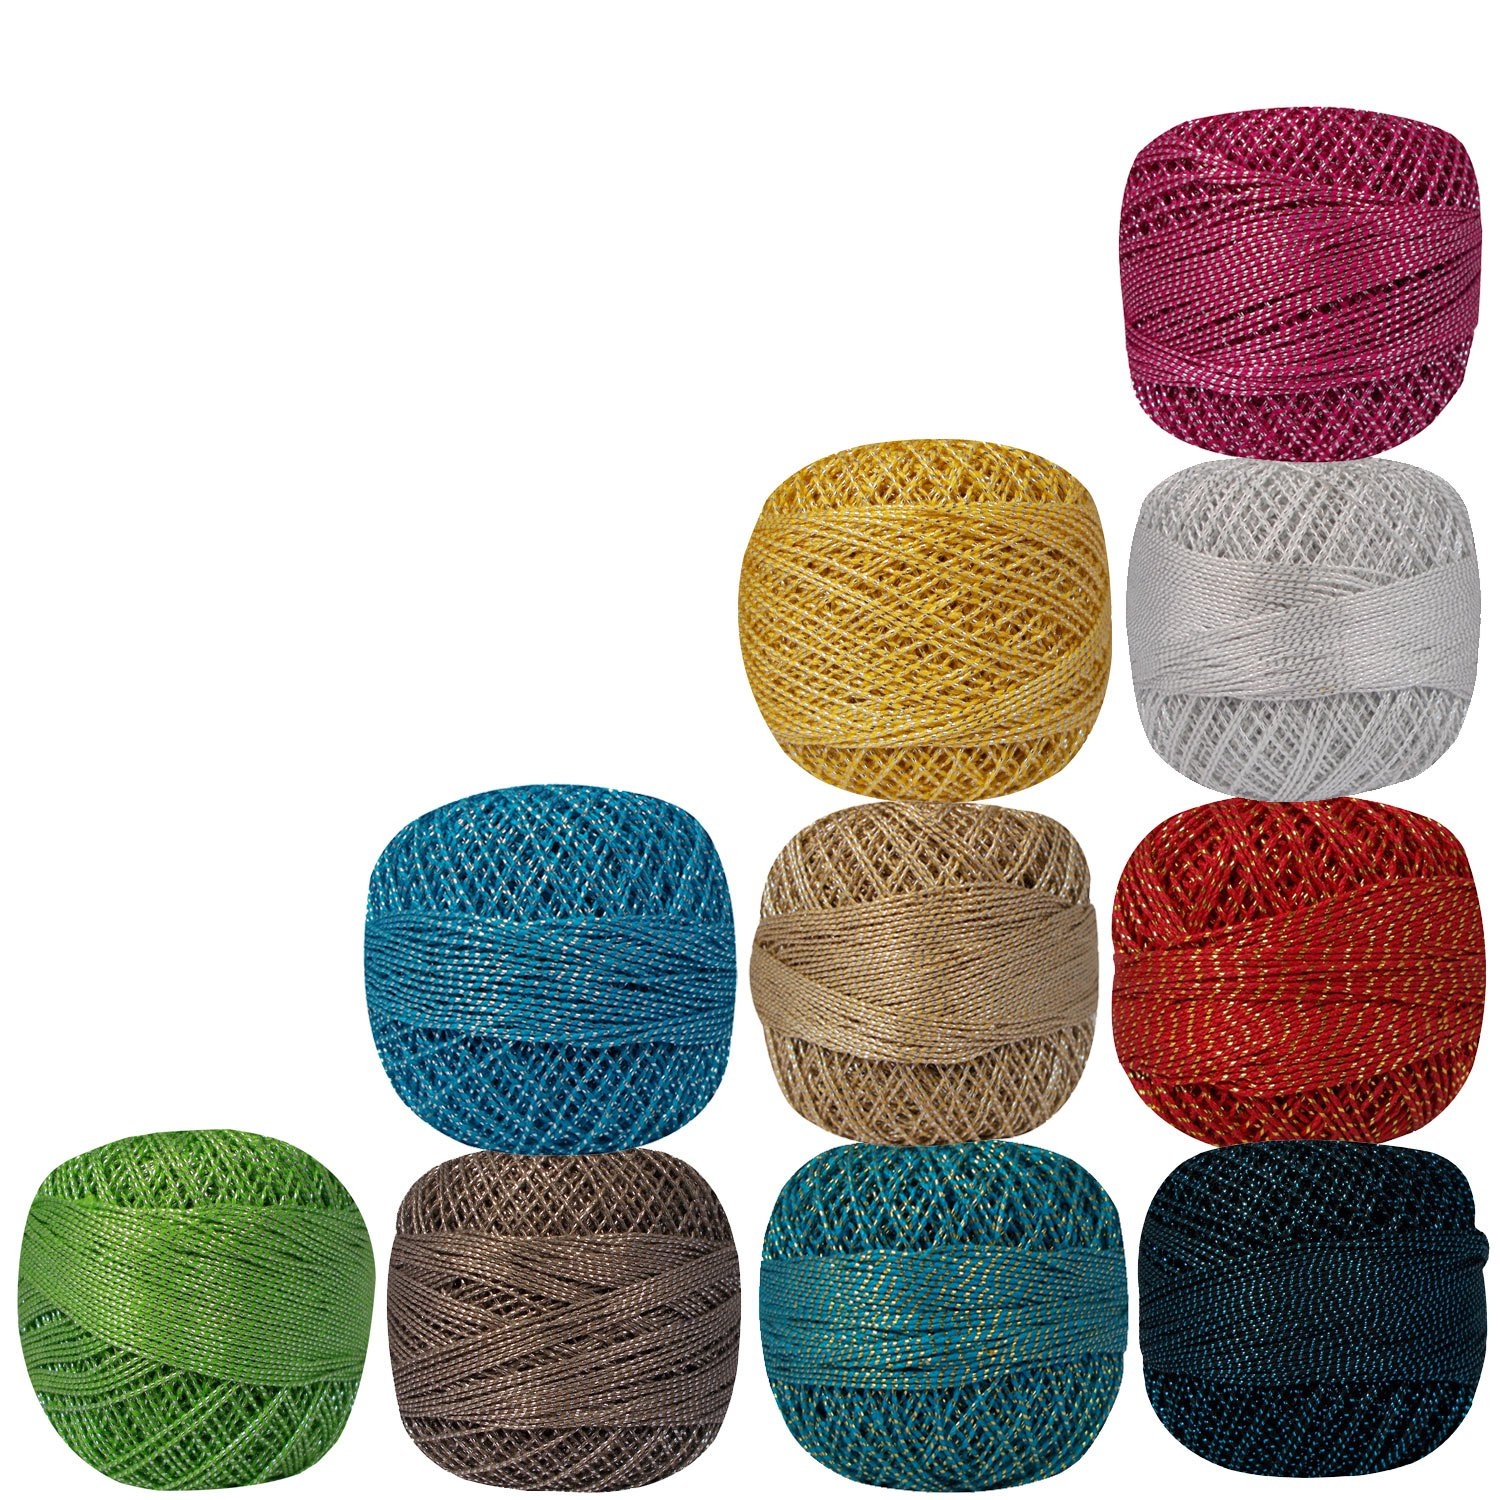 Pack of 10 Pcs Variegated Knitting Balls Yarn Tatting Doilies Assorted Skeins Lacey Craft Metallic Multicolor Cotton Crochet Thread